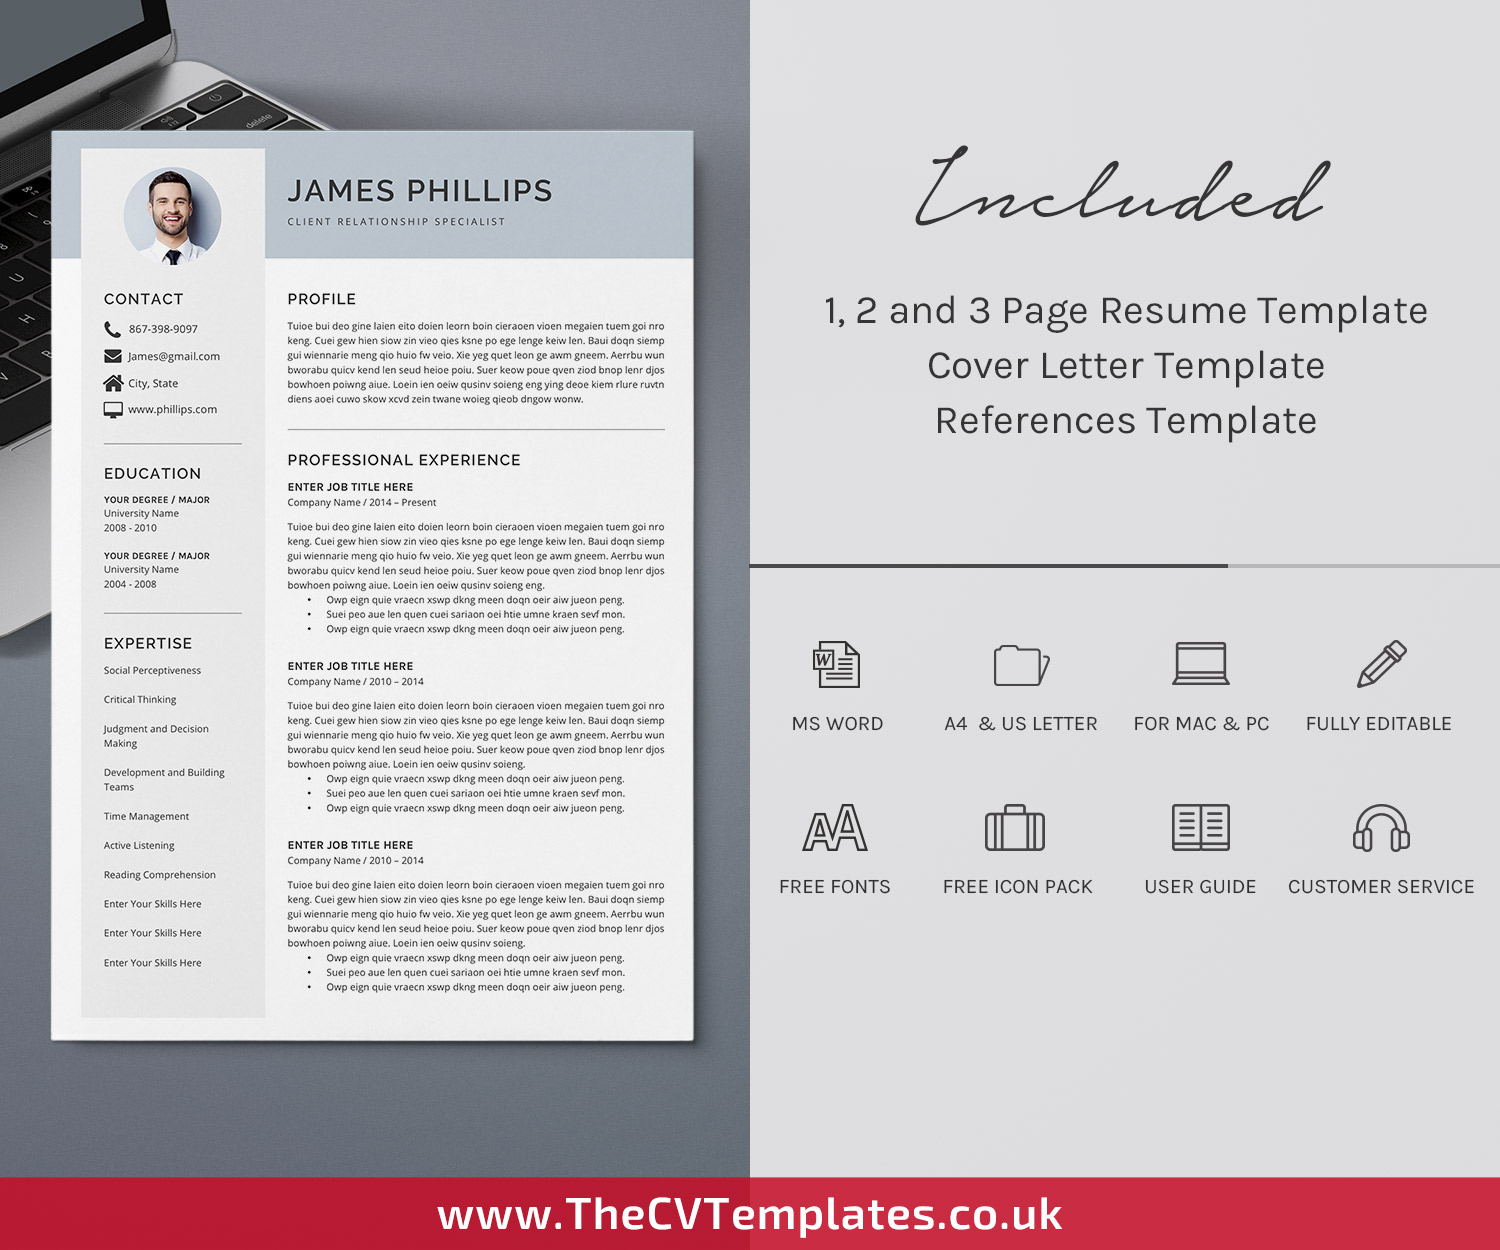 Clean Cv Template For Ms Word Curriculum Vitae Cover Letter References Modern Resume Professional Resume Editable Resume Job Resume 1 3 Page Resume Template Instant Download Thecvtemplates Co Uk